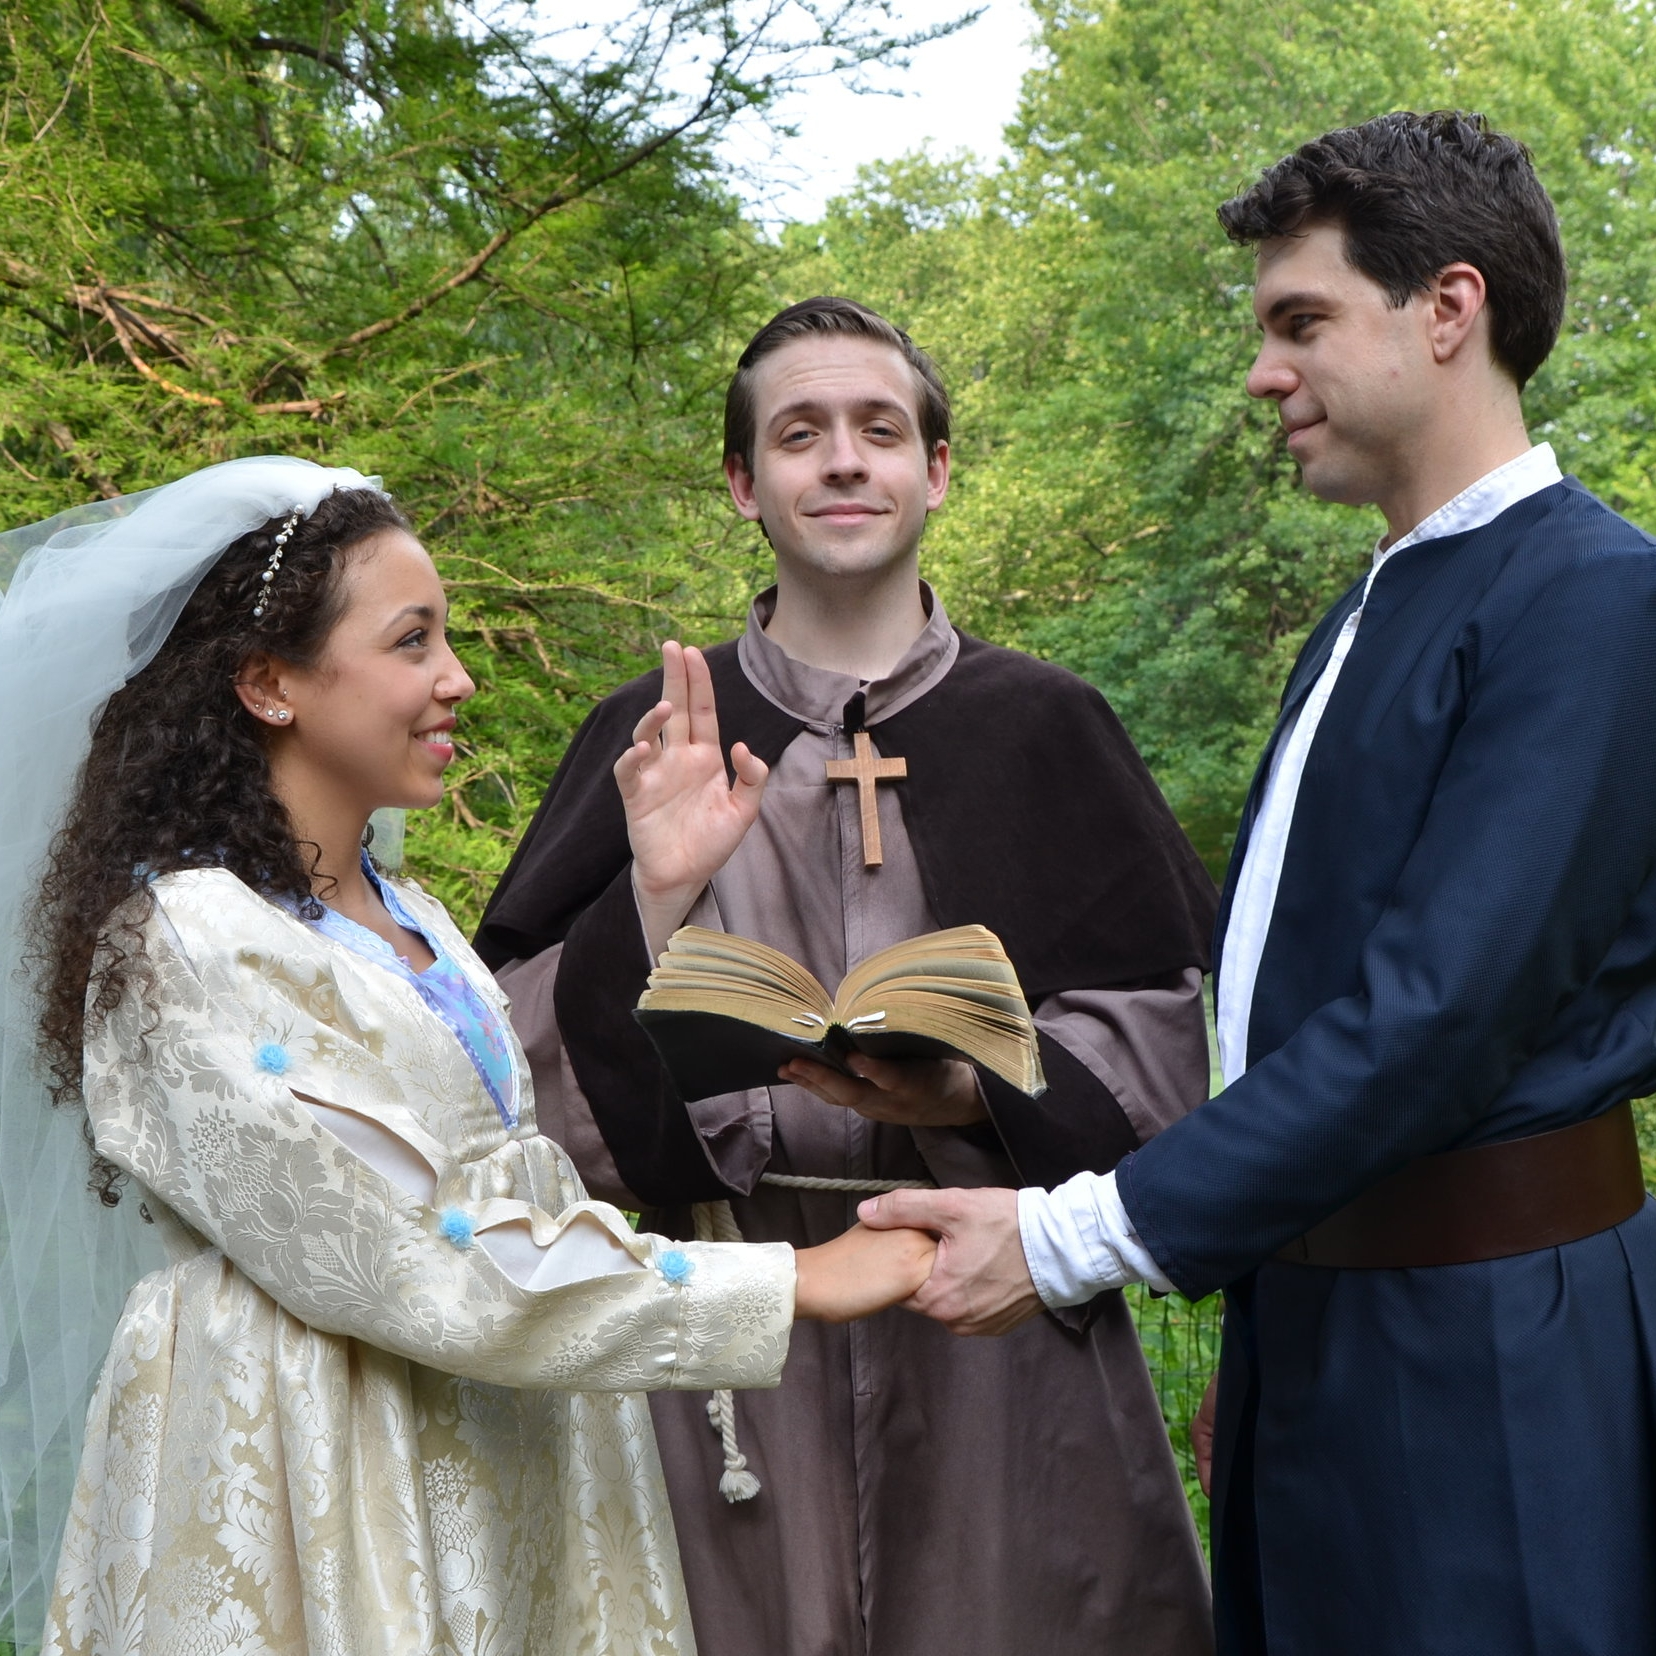 New York Classical free theatre in the park The Taming of the Shrew William Shakespeare